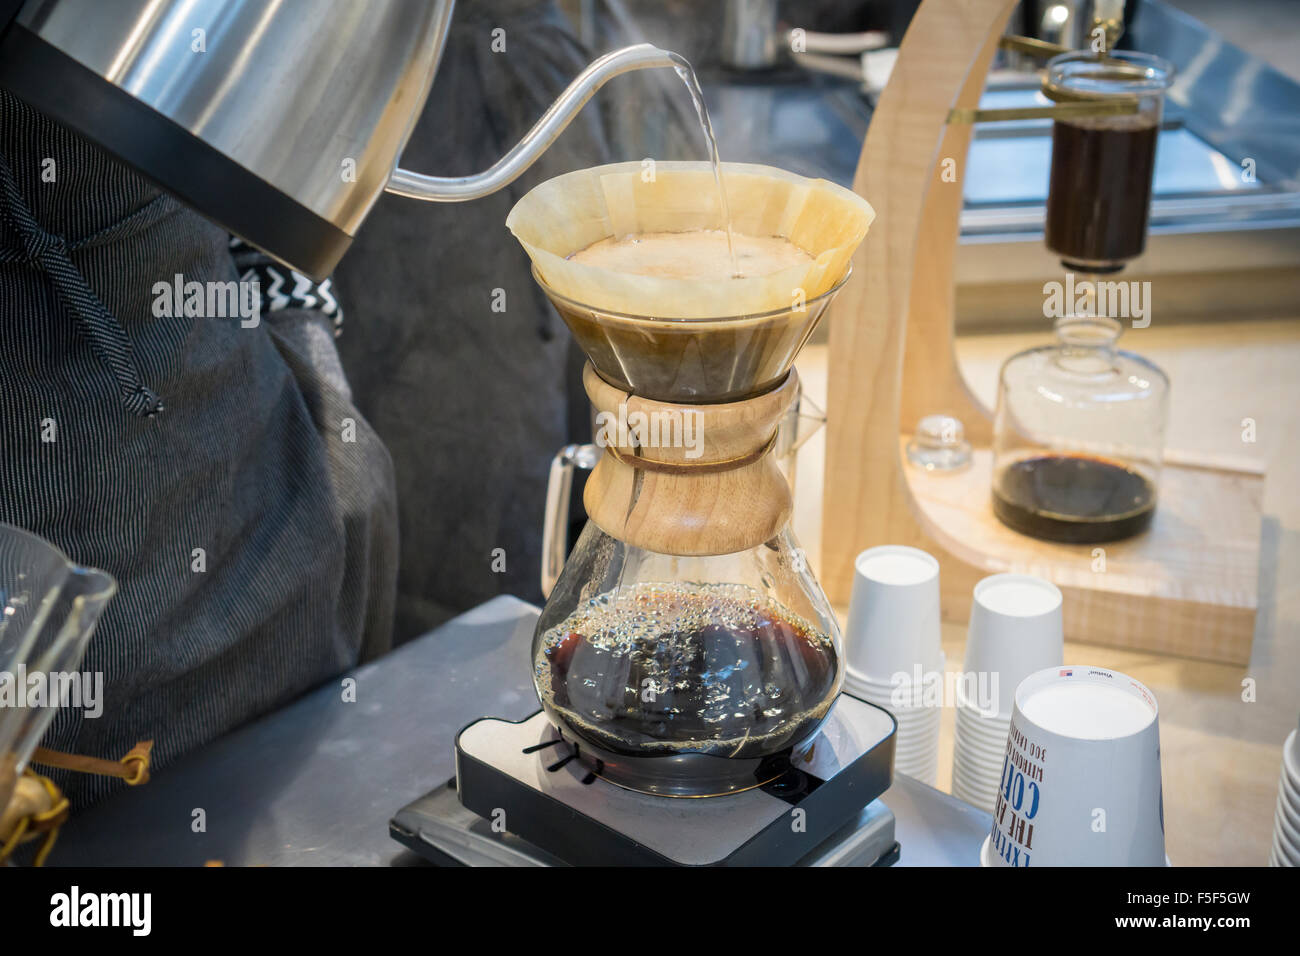 A barista prepares a pour over cup of coffee in a cafe in New York on Monday, November 2, 2015. (© Richard - Stock Image